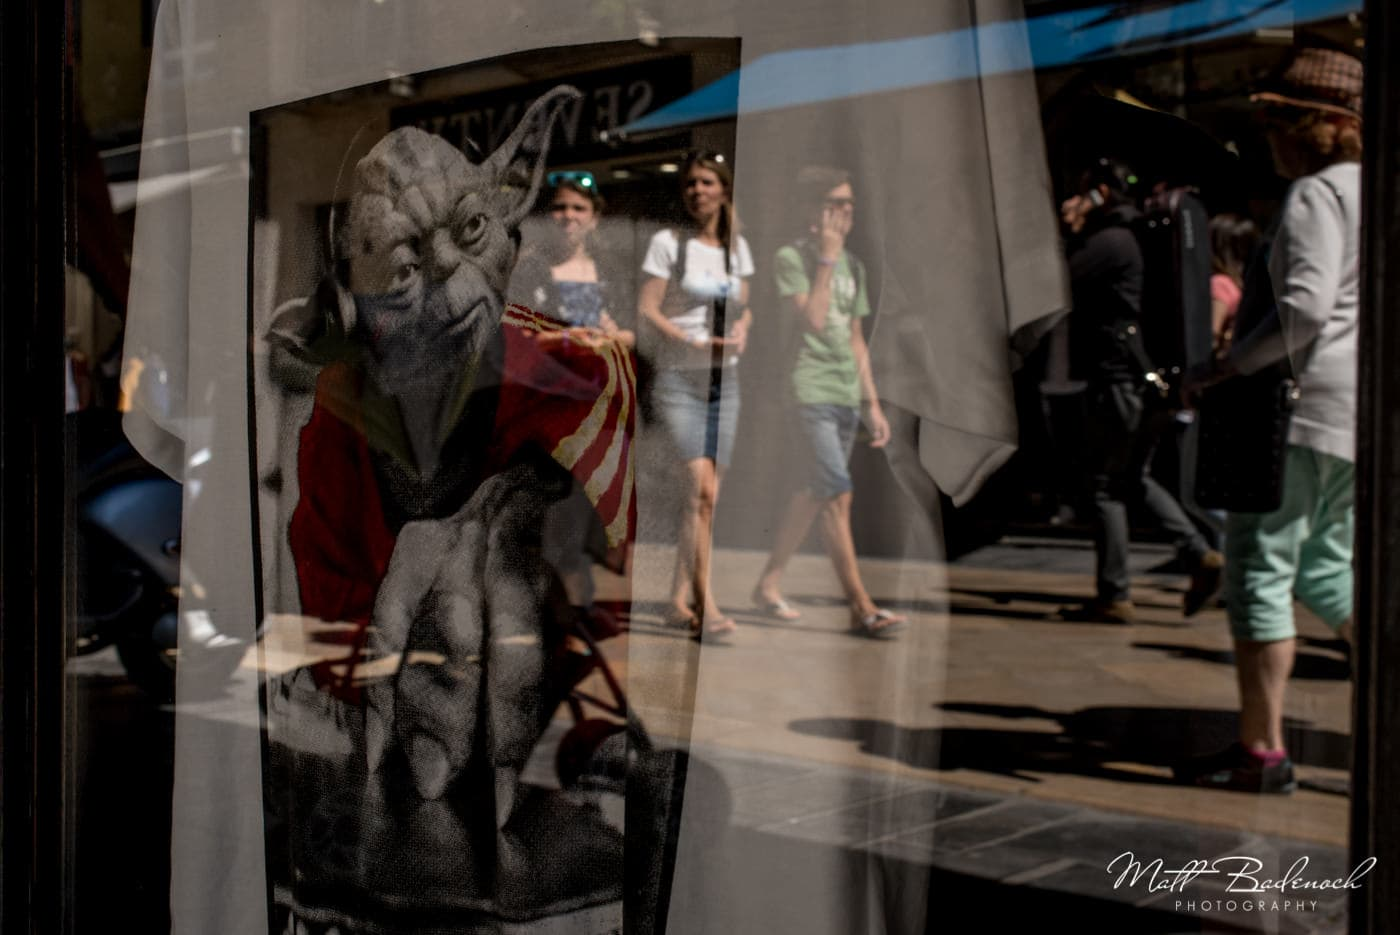 yoda t-shirt, rue sainte-catherine, star wars | bordeaux street photography